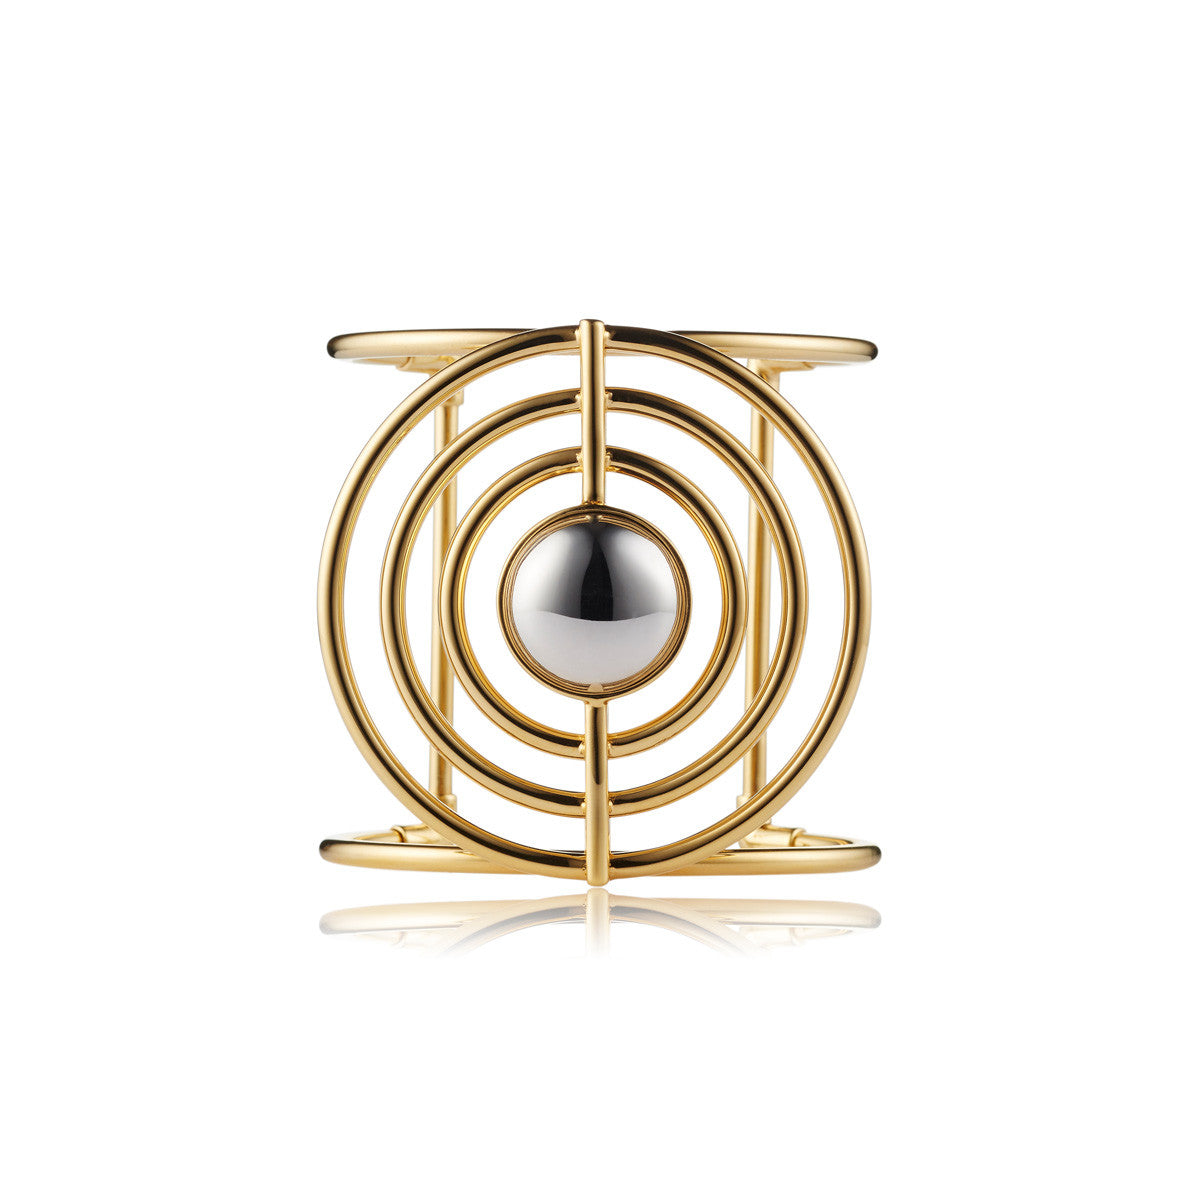 Solid brass, the Splendidus Saturn cuff bangle features contrasting 18K gold and rhodium plating - front